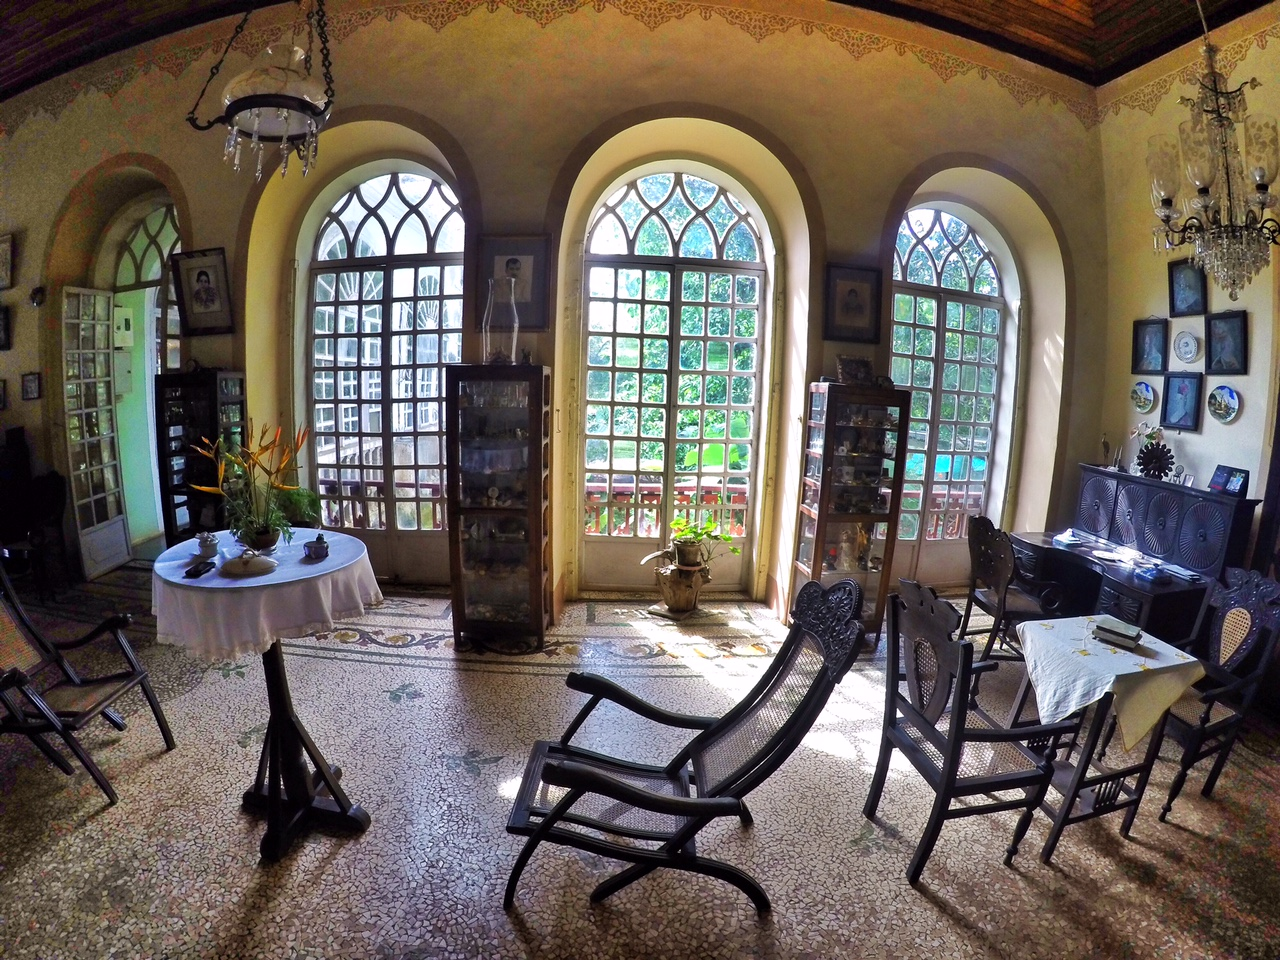 How To Book A Room At The Goan Corner